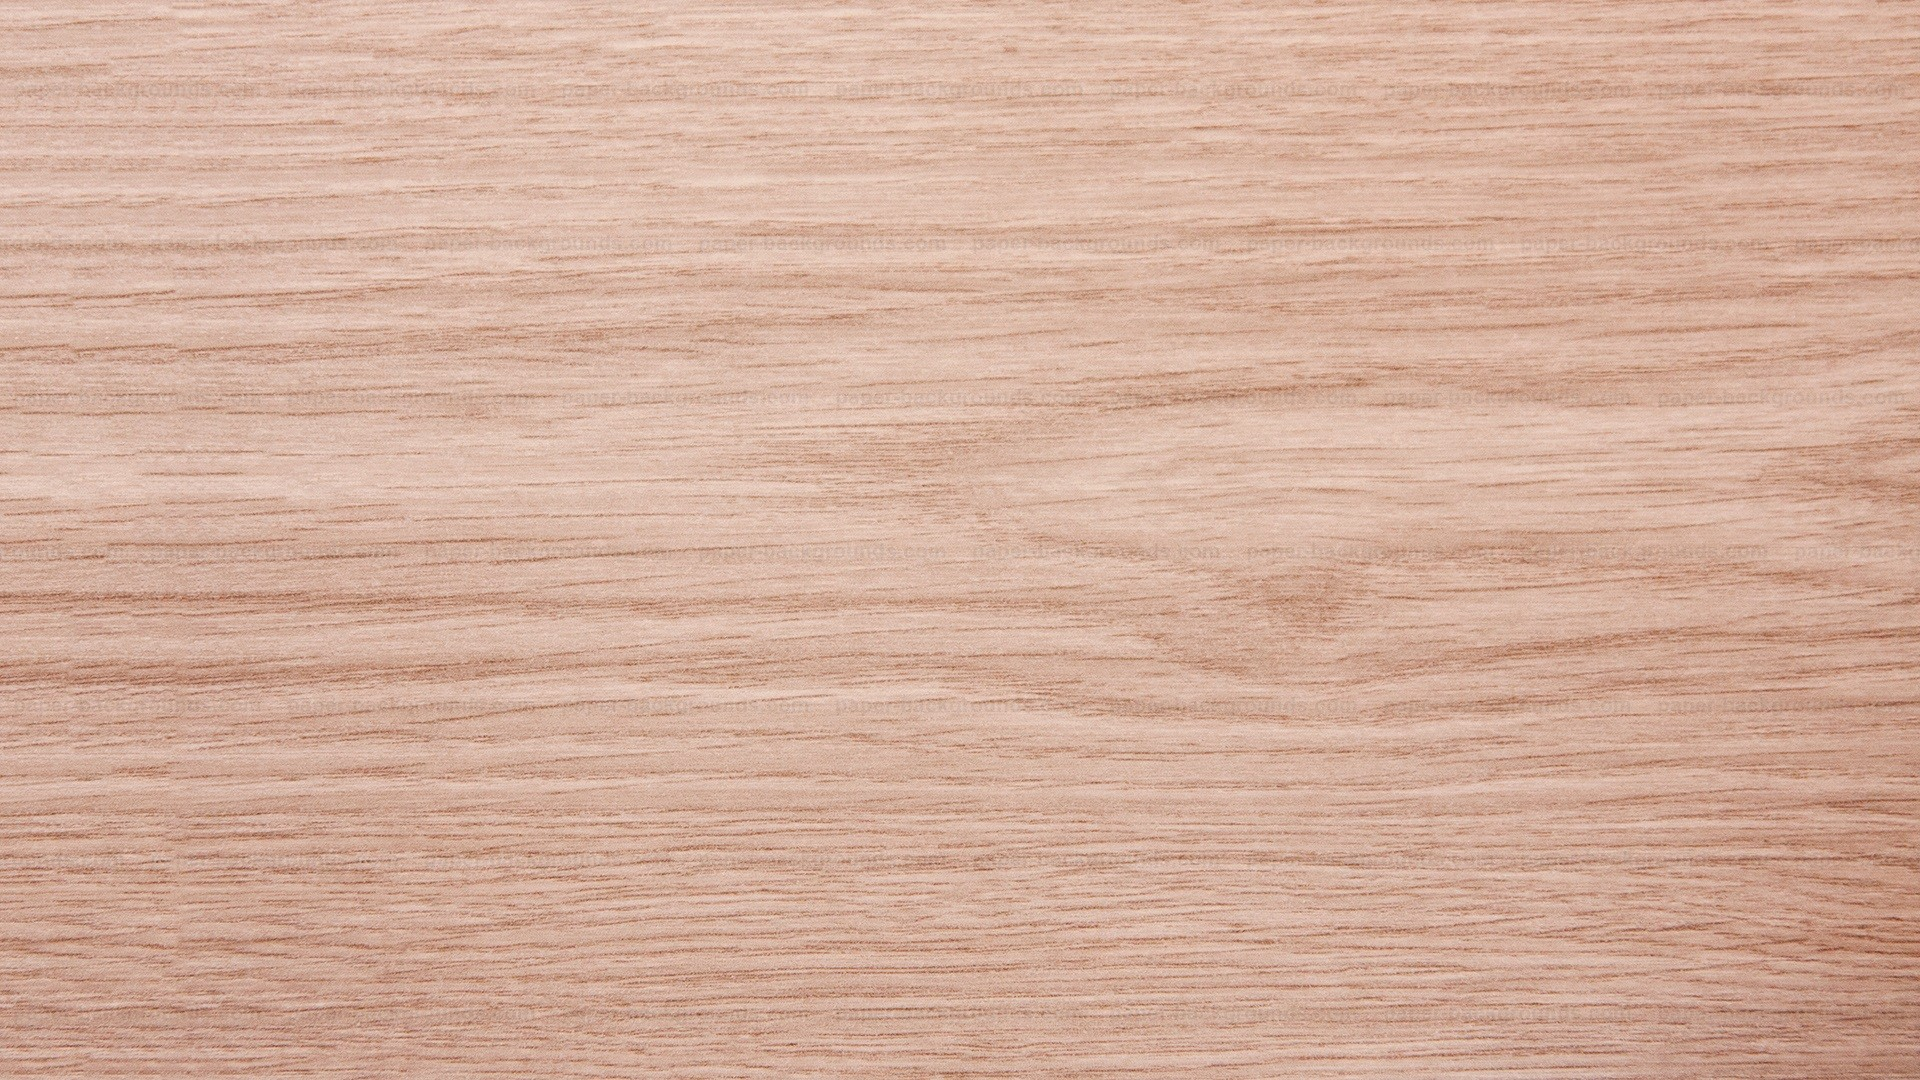 Wood table background hd - 1920x1080 Light Brown Wood Furniture